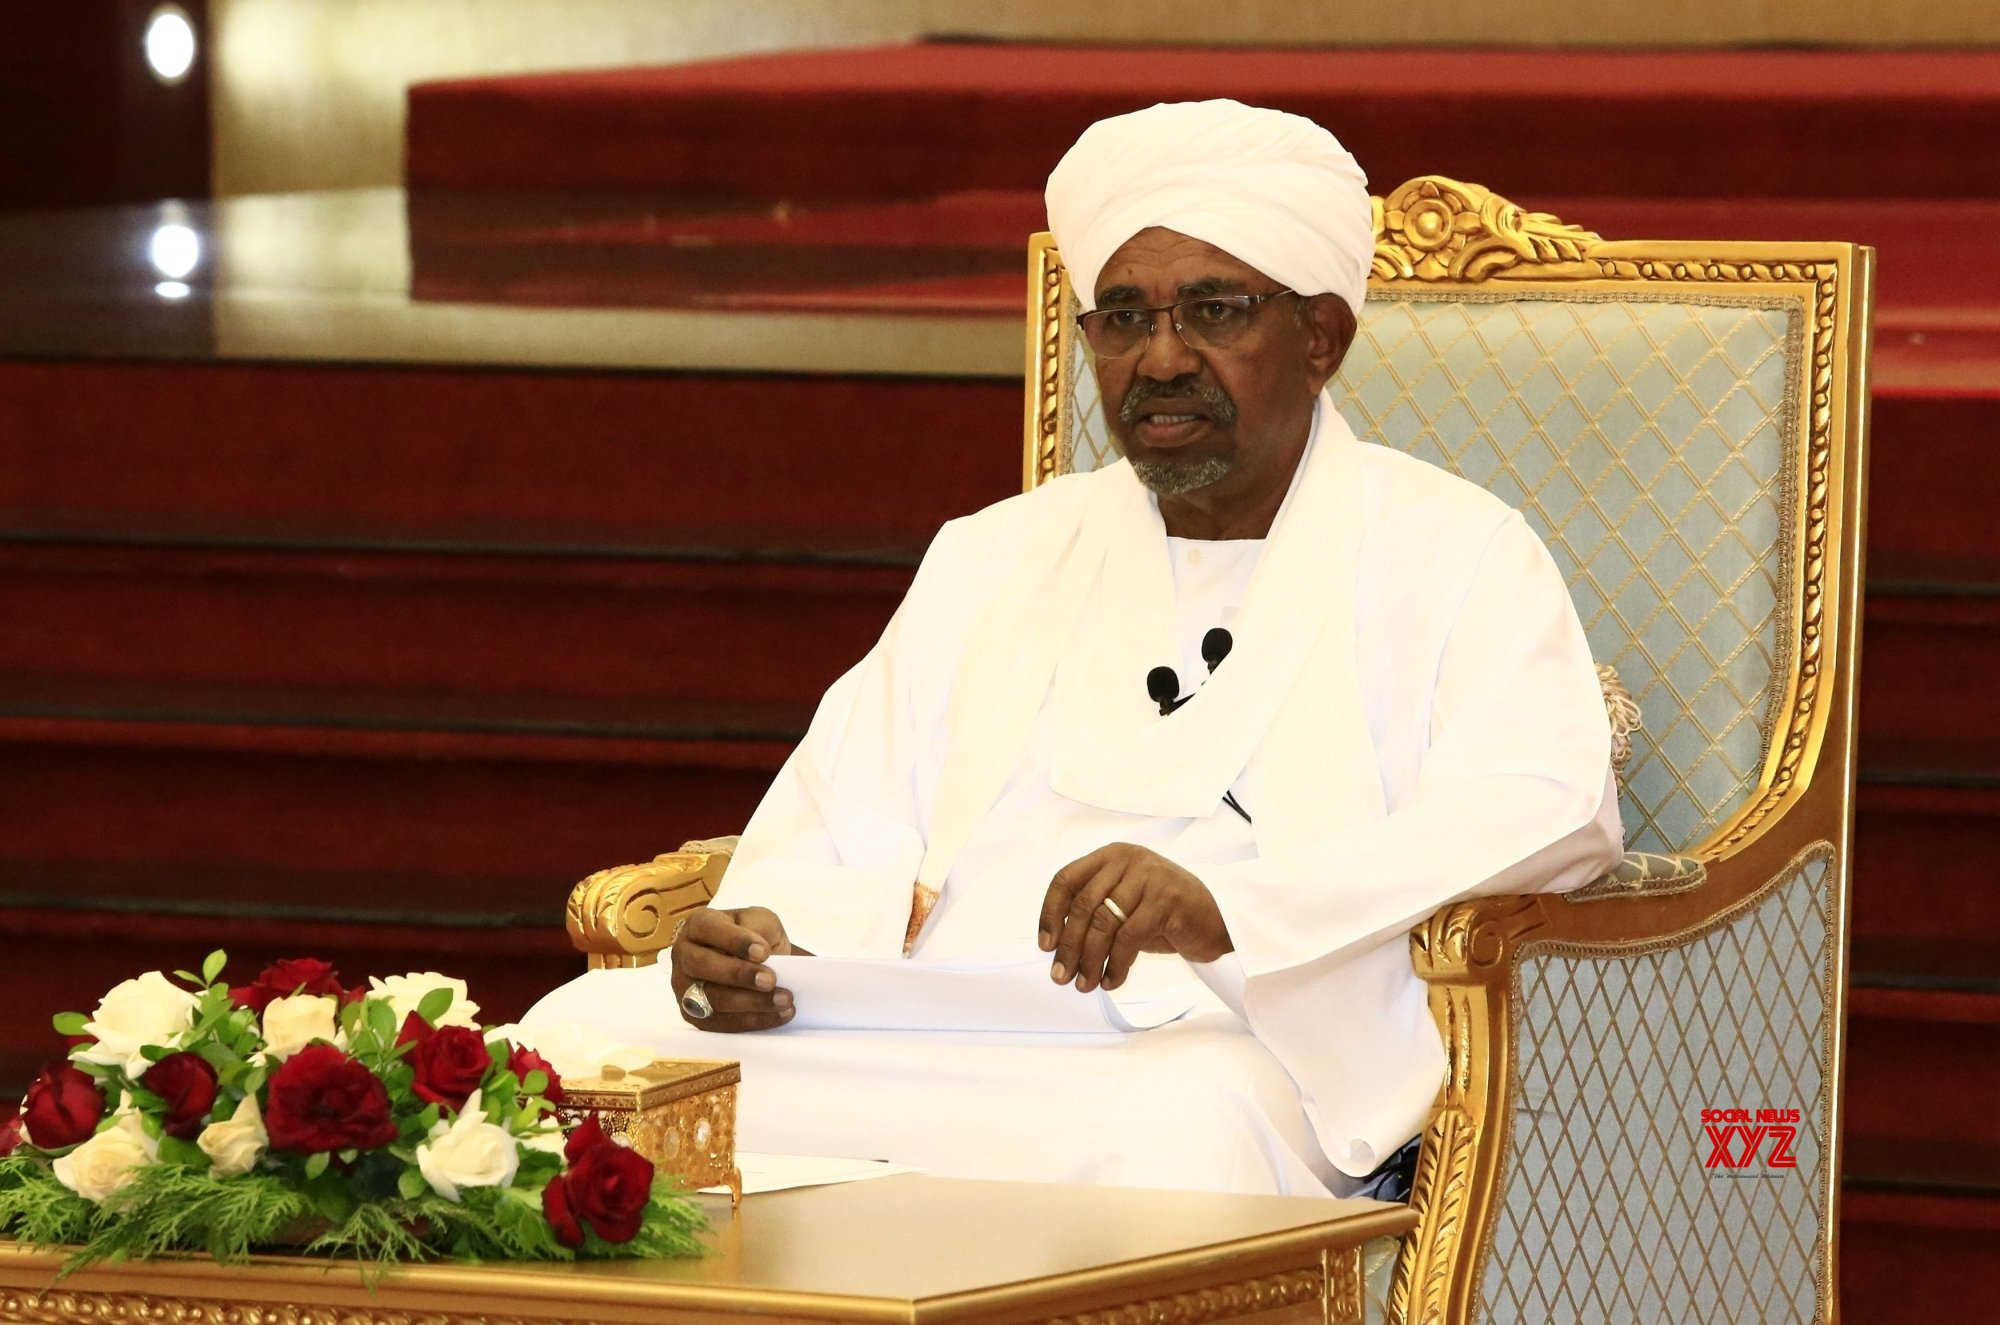 Toppled Sudanese ex-President Bashir shifted to jail